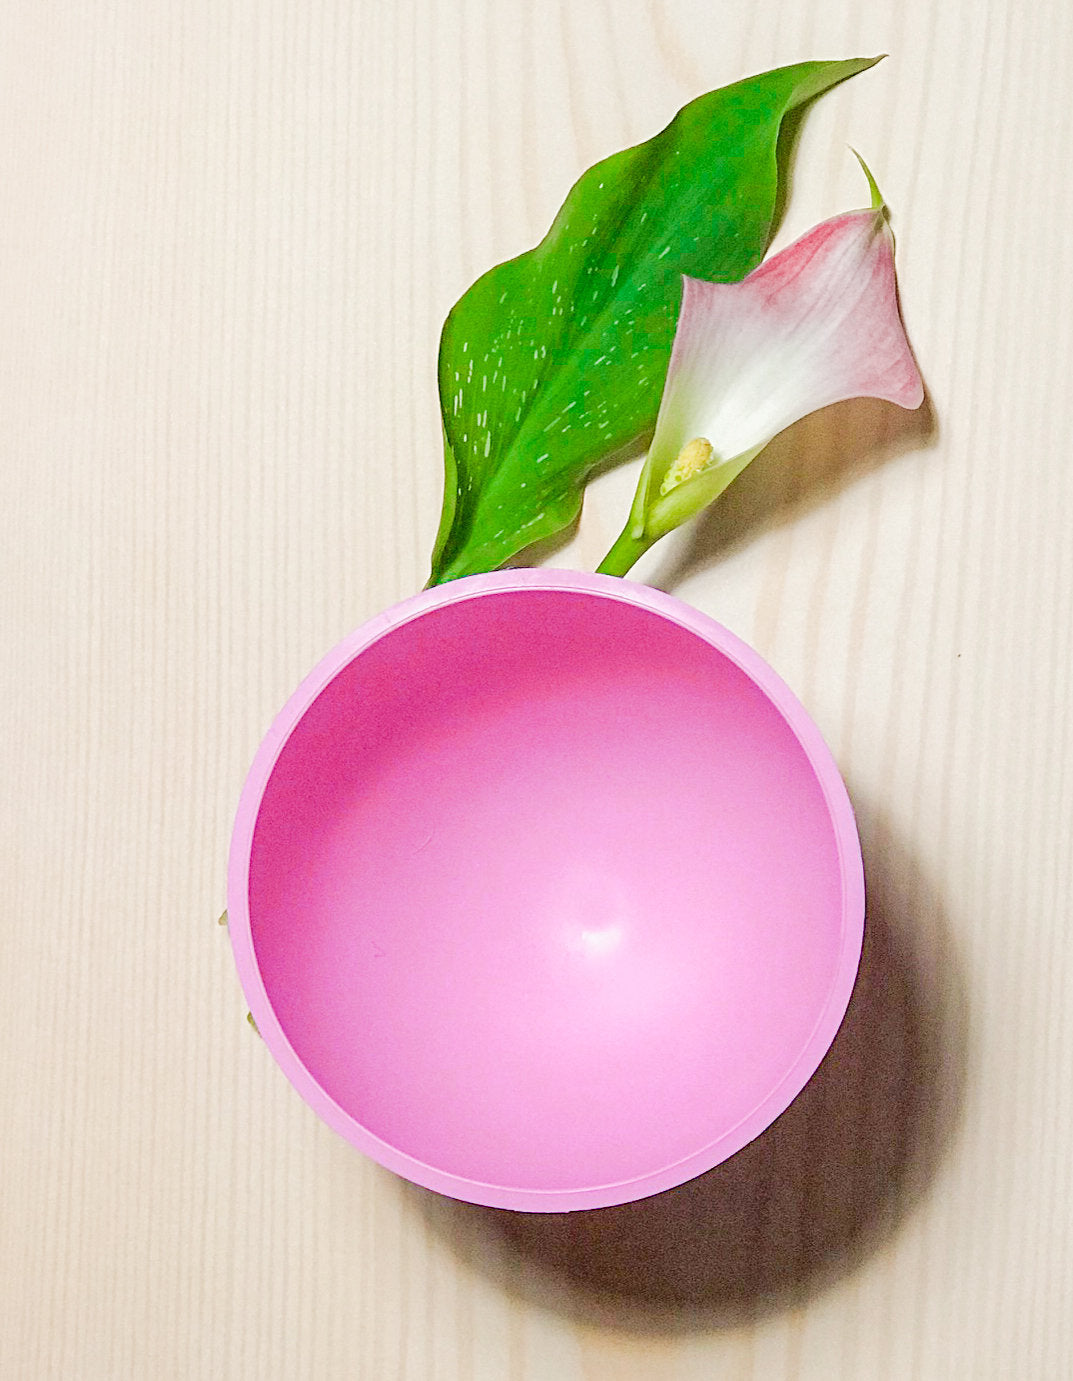 Pink Medical Grade Rubber Mixing Bowl